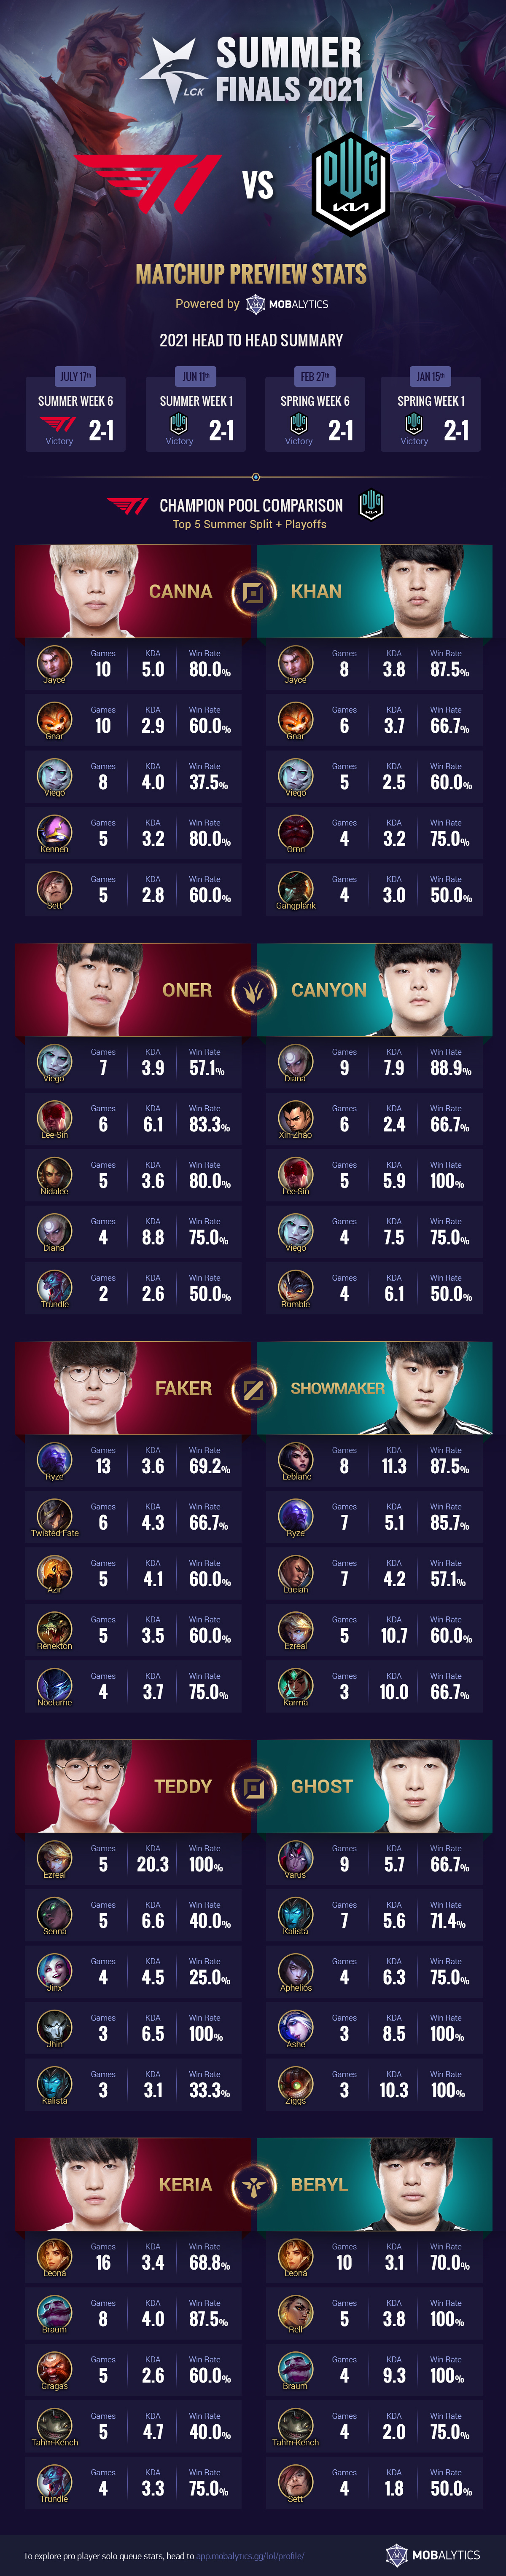 2021 LCK Summer Finals: T1 vs DWG KIA – Matchup Preview Stats (Infographic)